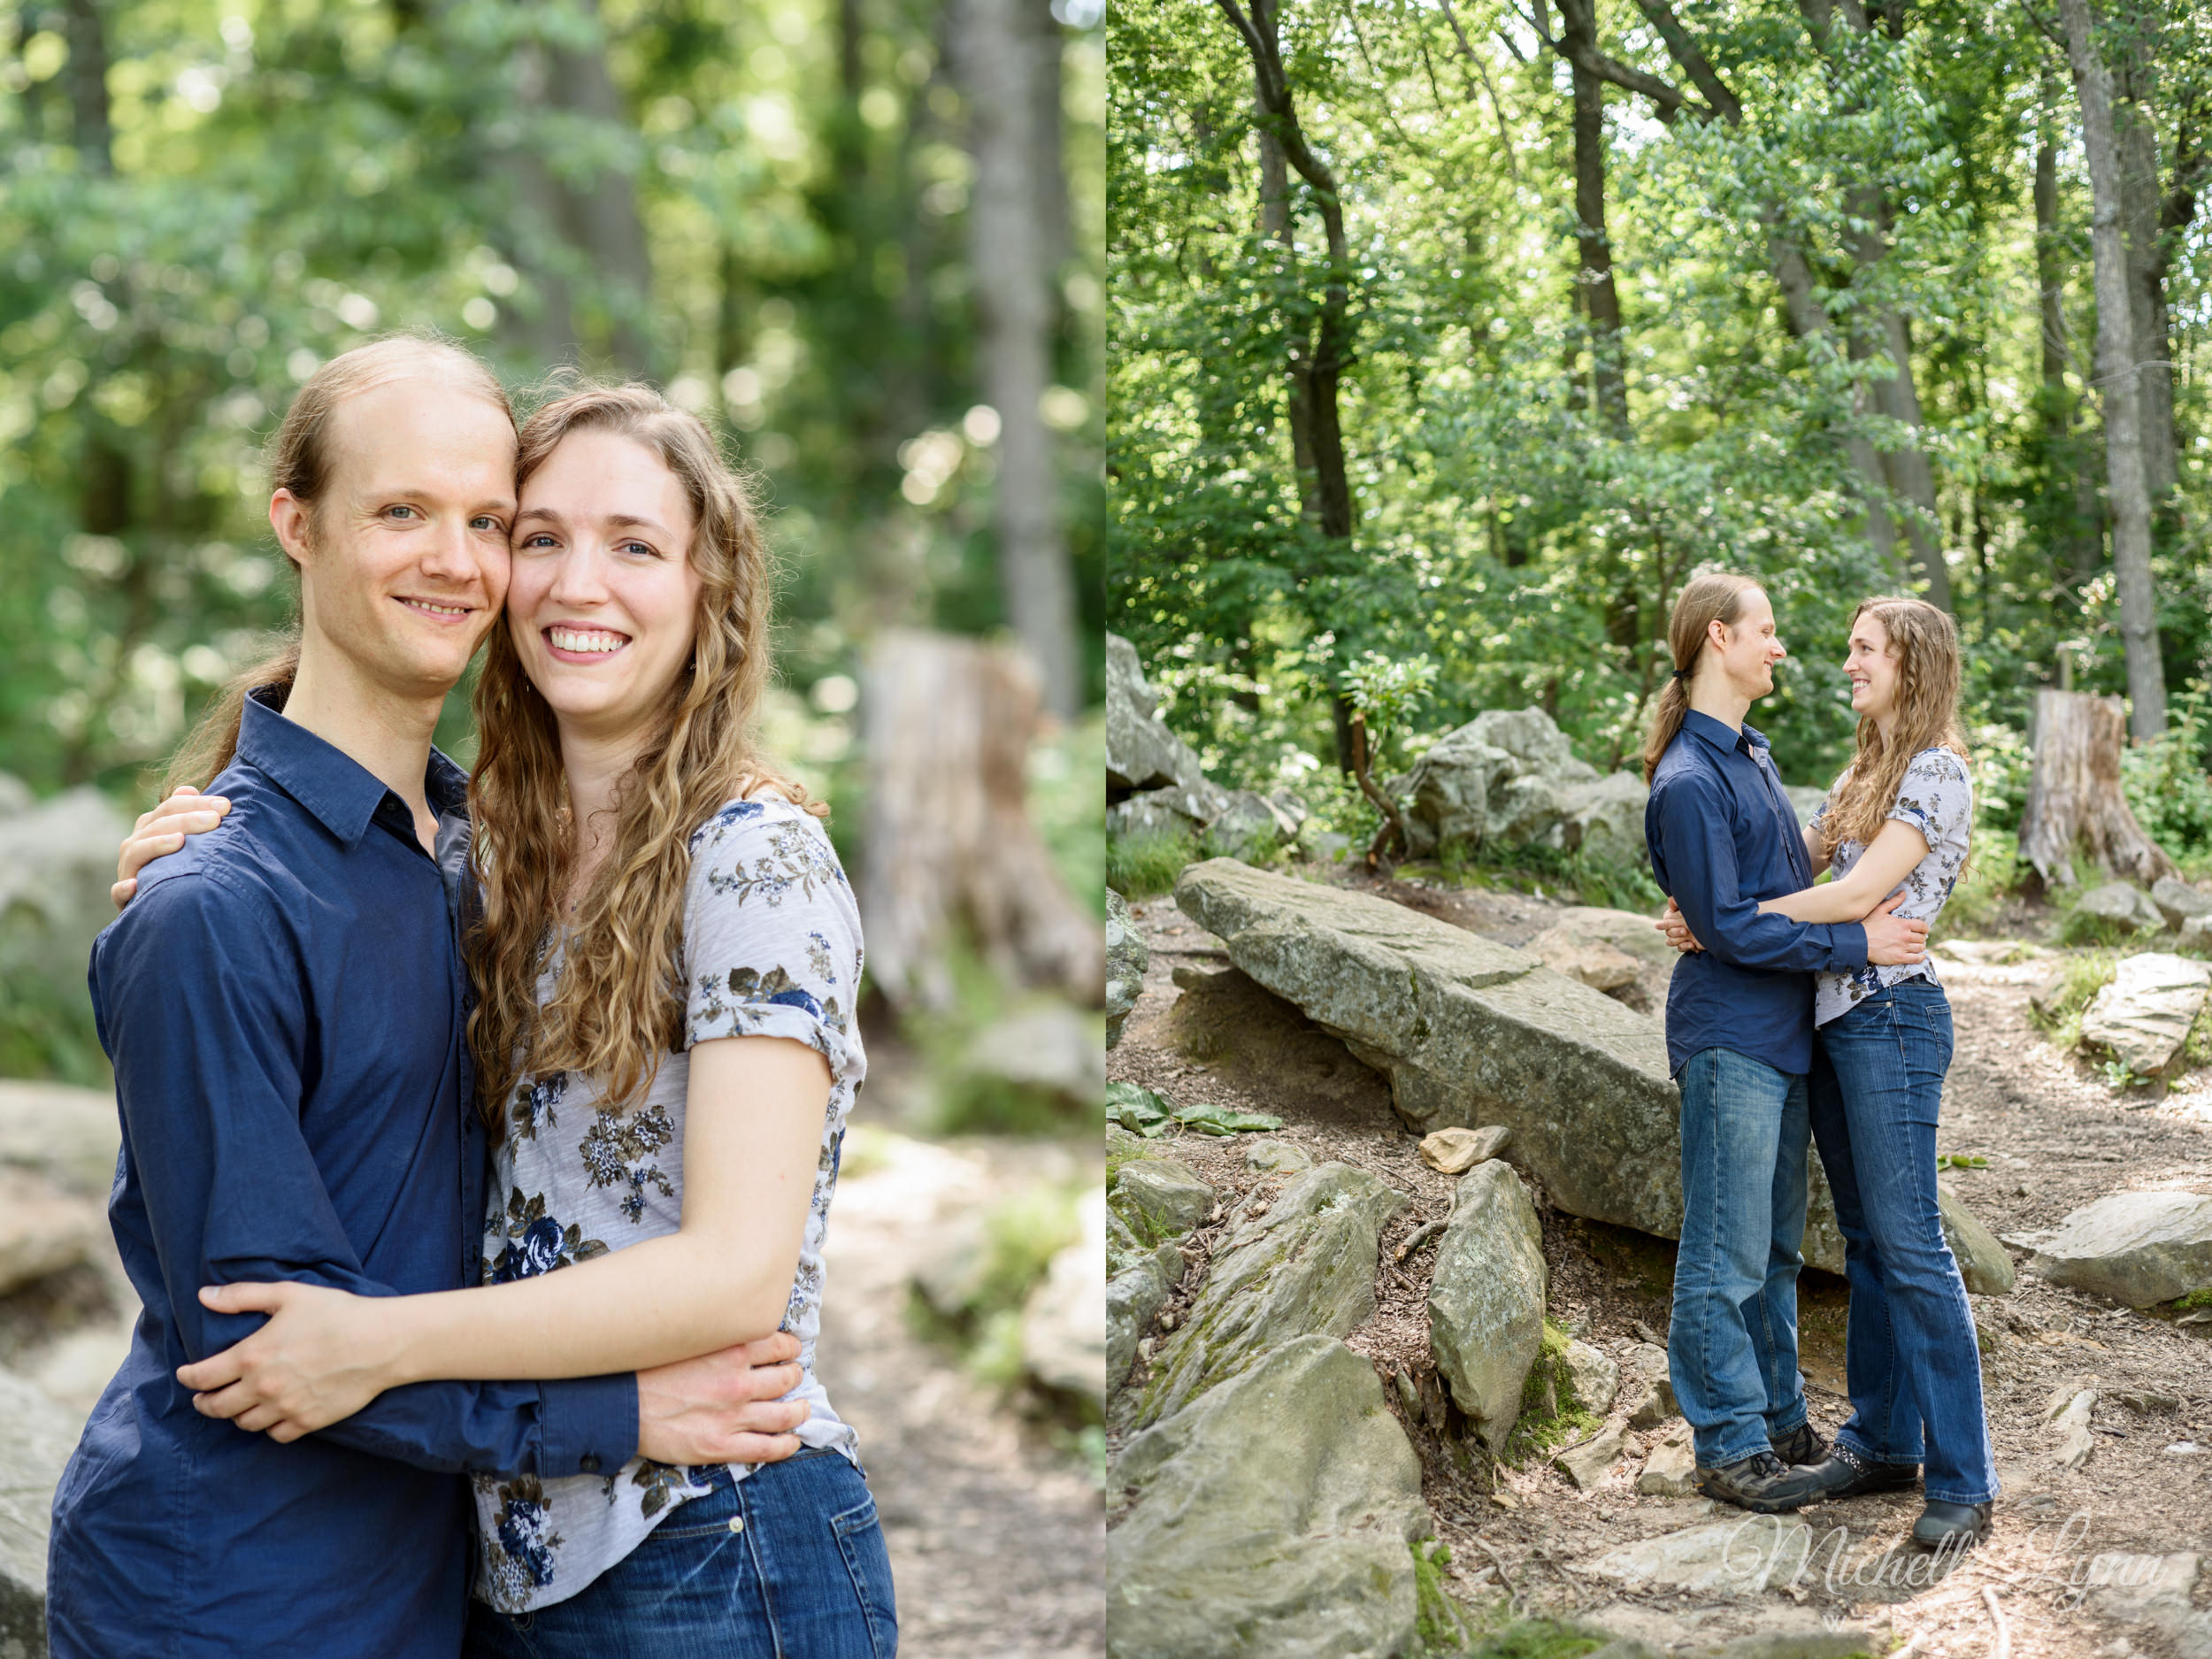 mlw-rocks-state-park-maryland-engagement-photos-2.jpg